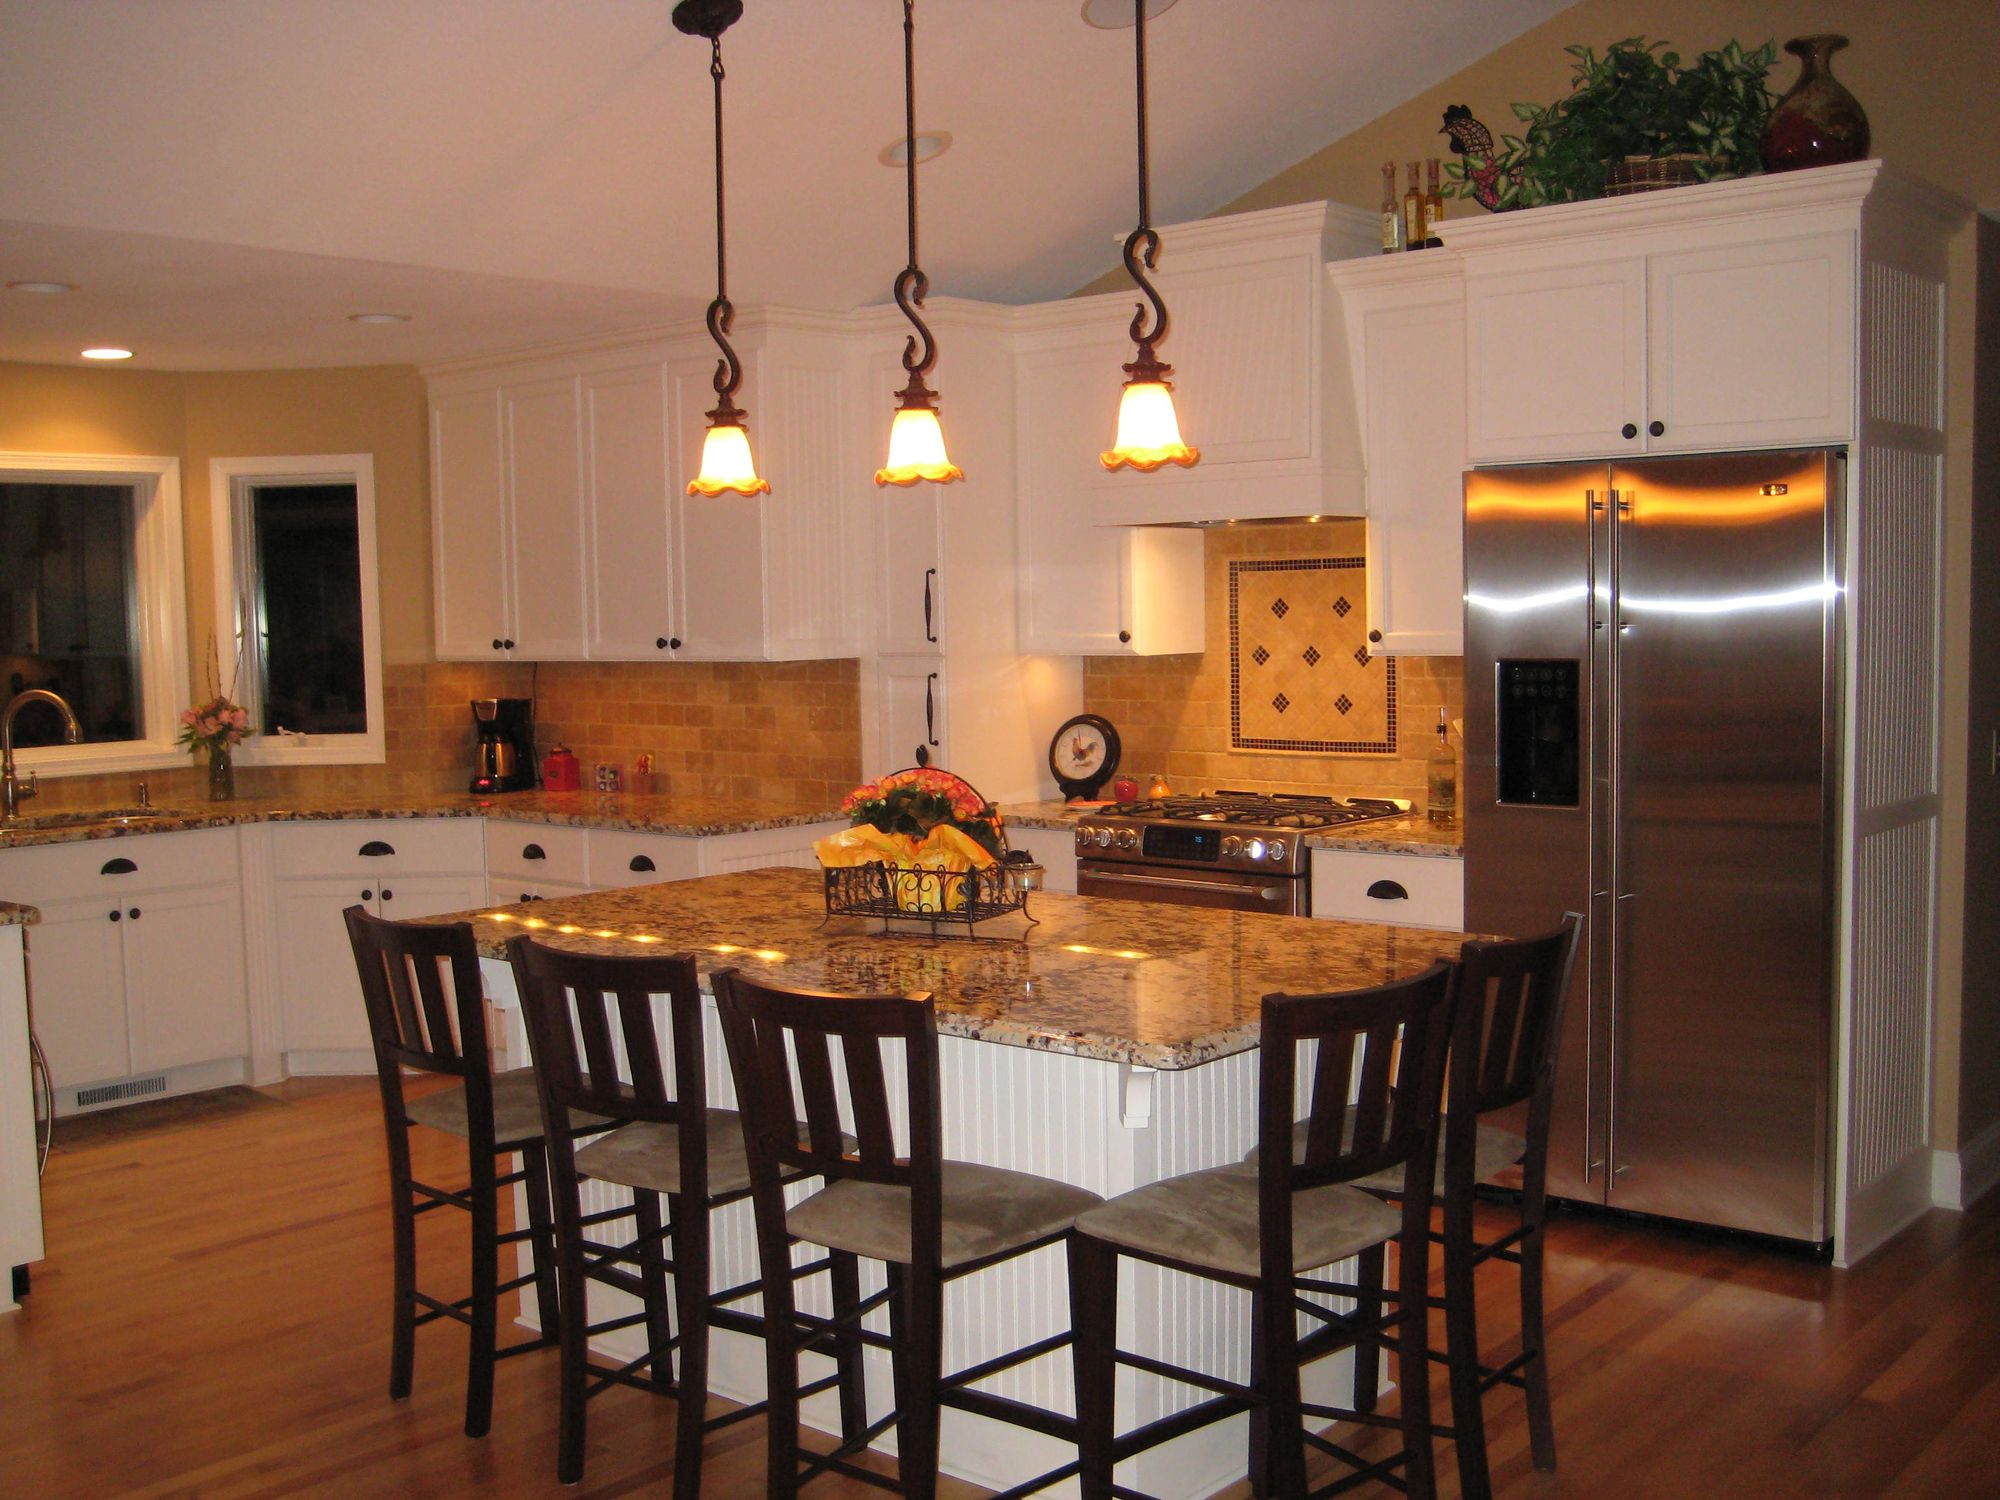 split level homes split level kitchen remodel A split level house in Chanhassen gets a family friendly kitchen and dining room makeover Peak ceiling with cabinets